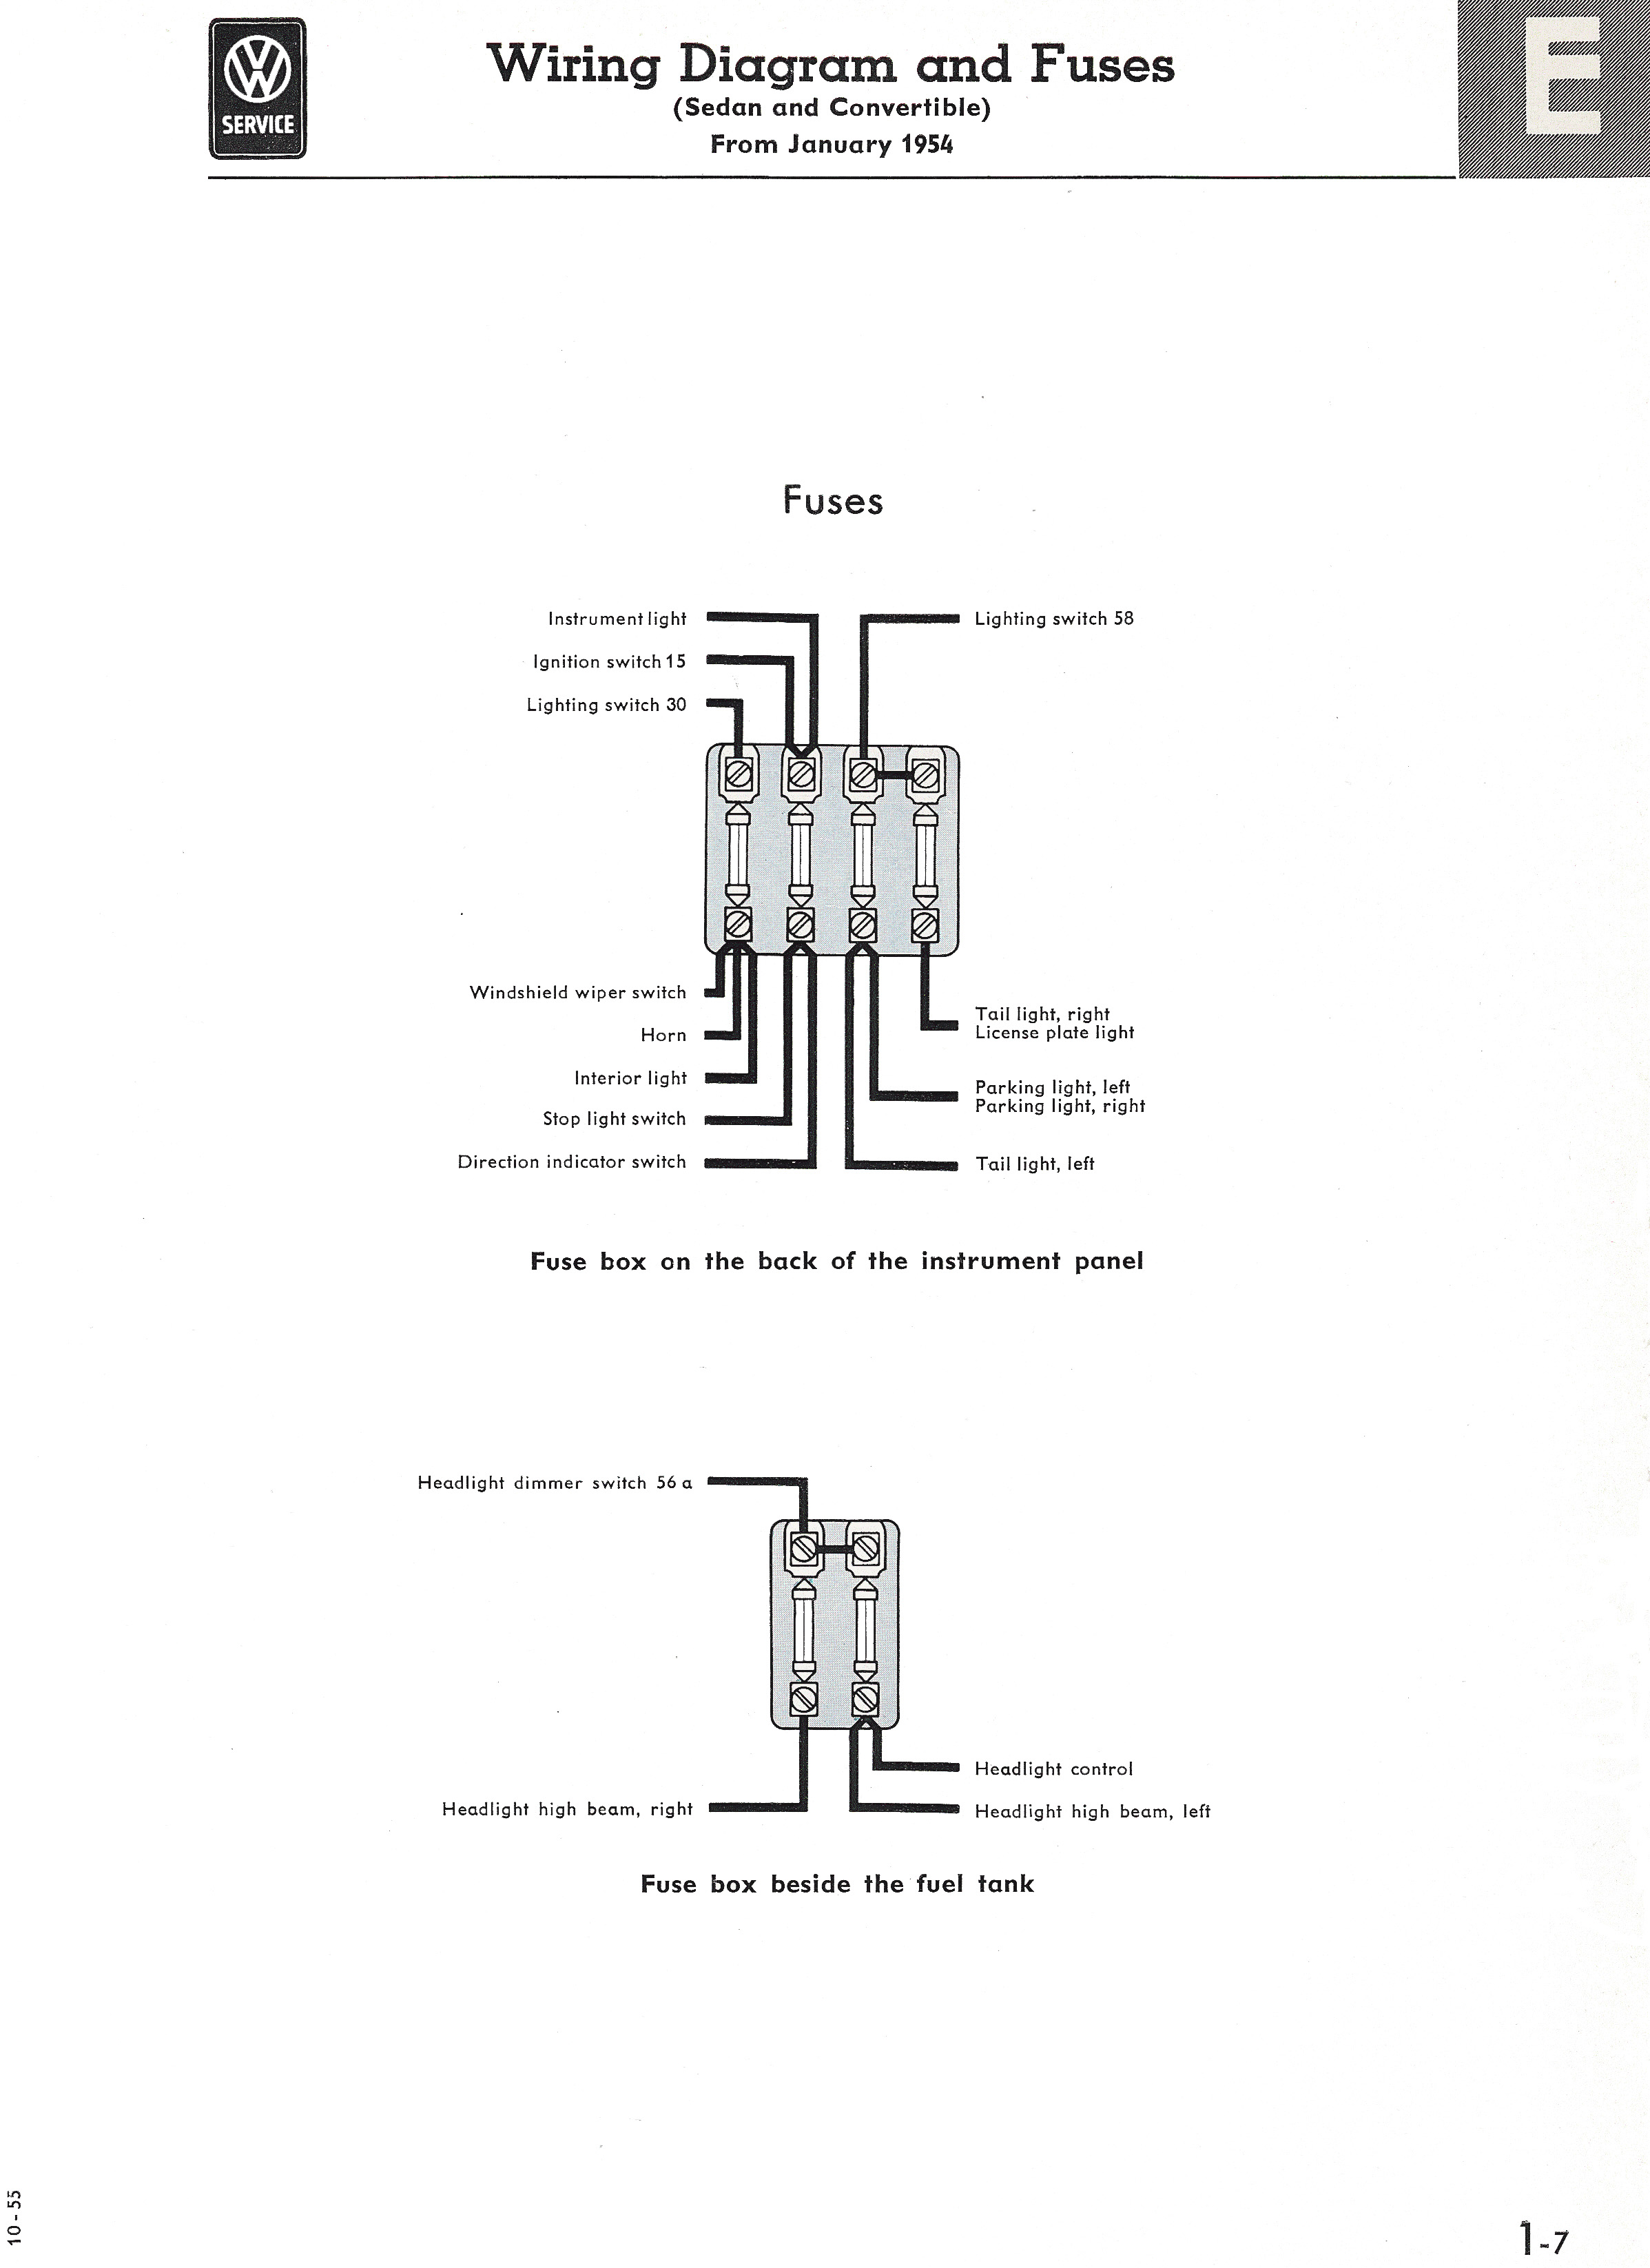 Type 1 Wiring Diagrams F250 7 3l Diagram Blower